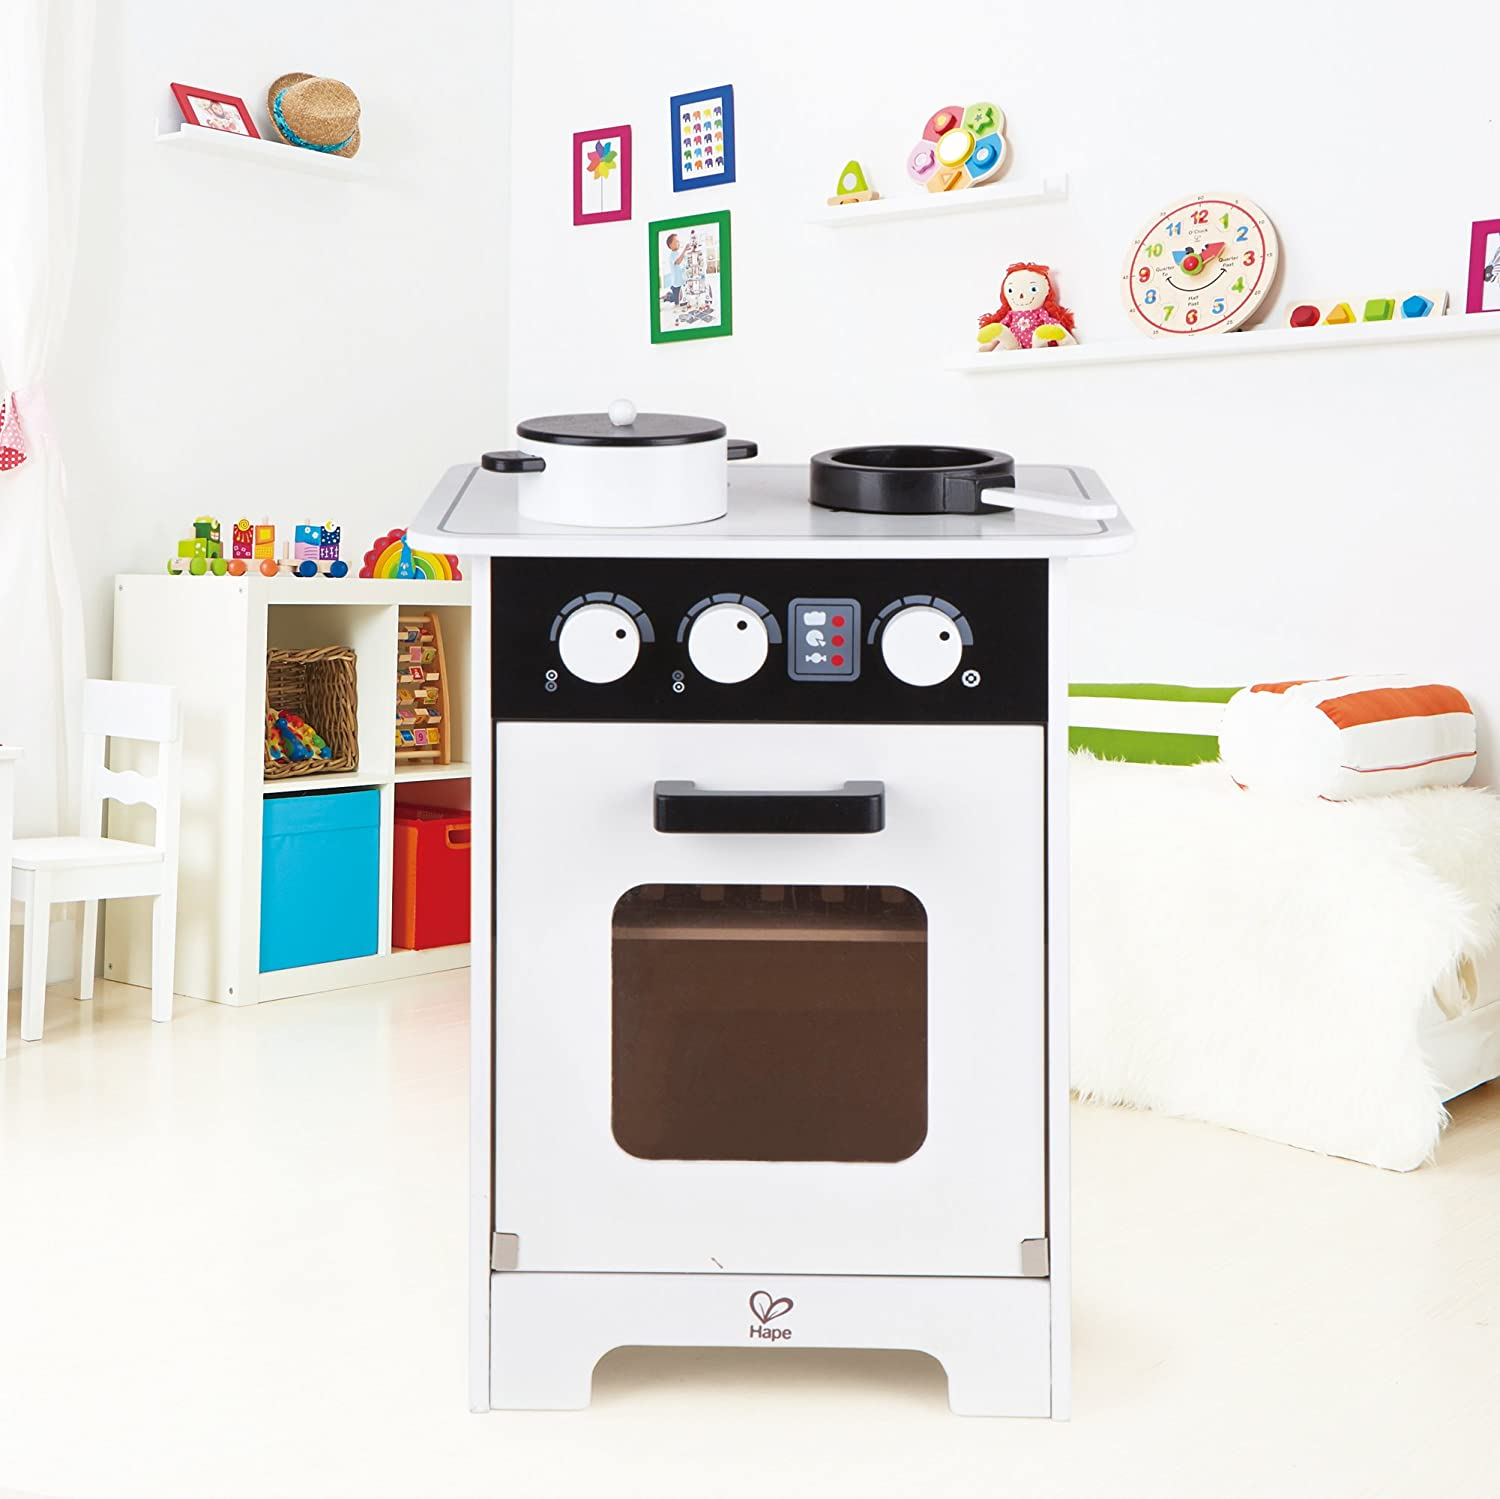 Amazon.com: Hape Kids Compact Modern Wooden Play Kitchen: Toys & Games